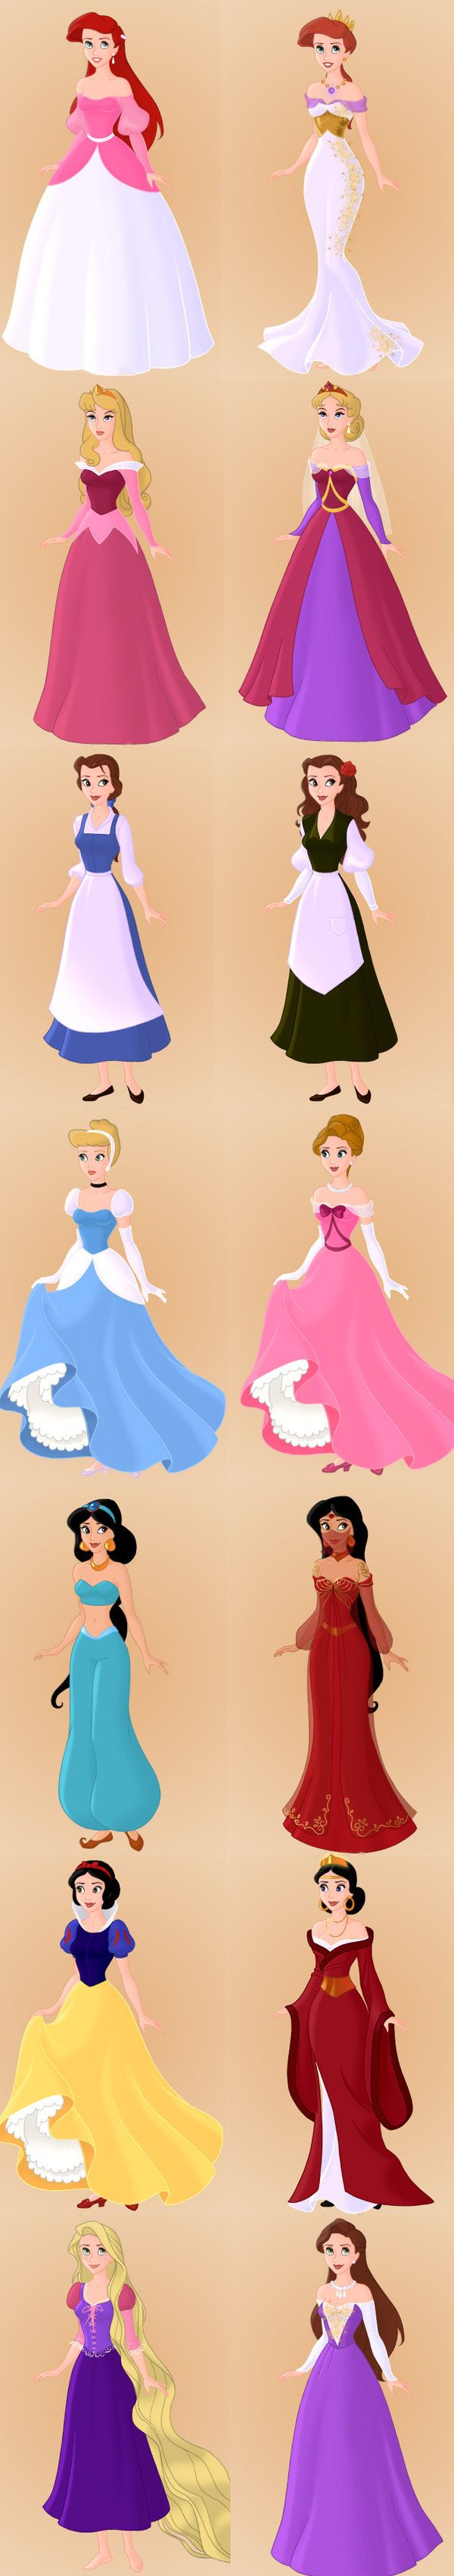 Disney Princesses And Their Moms. Can I just have the mothers' outfits please?